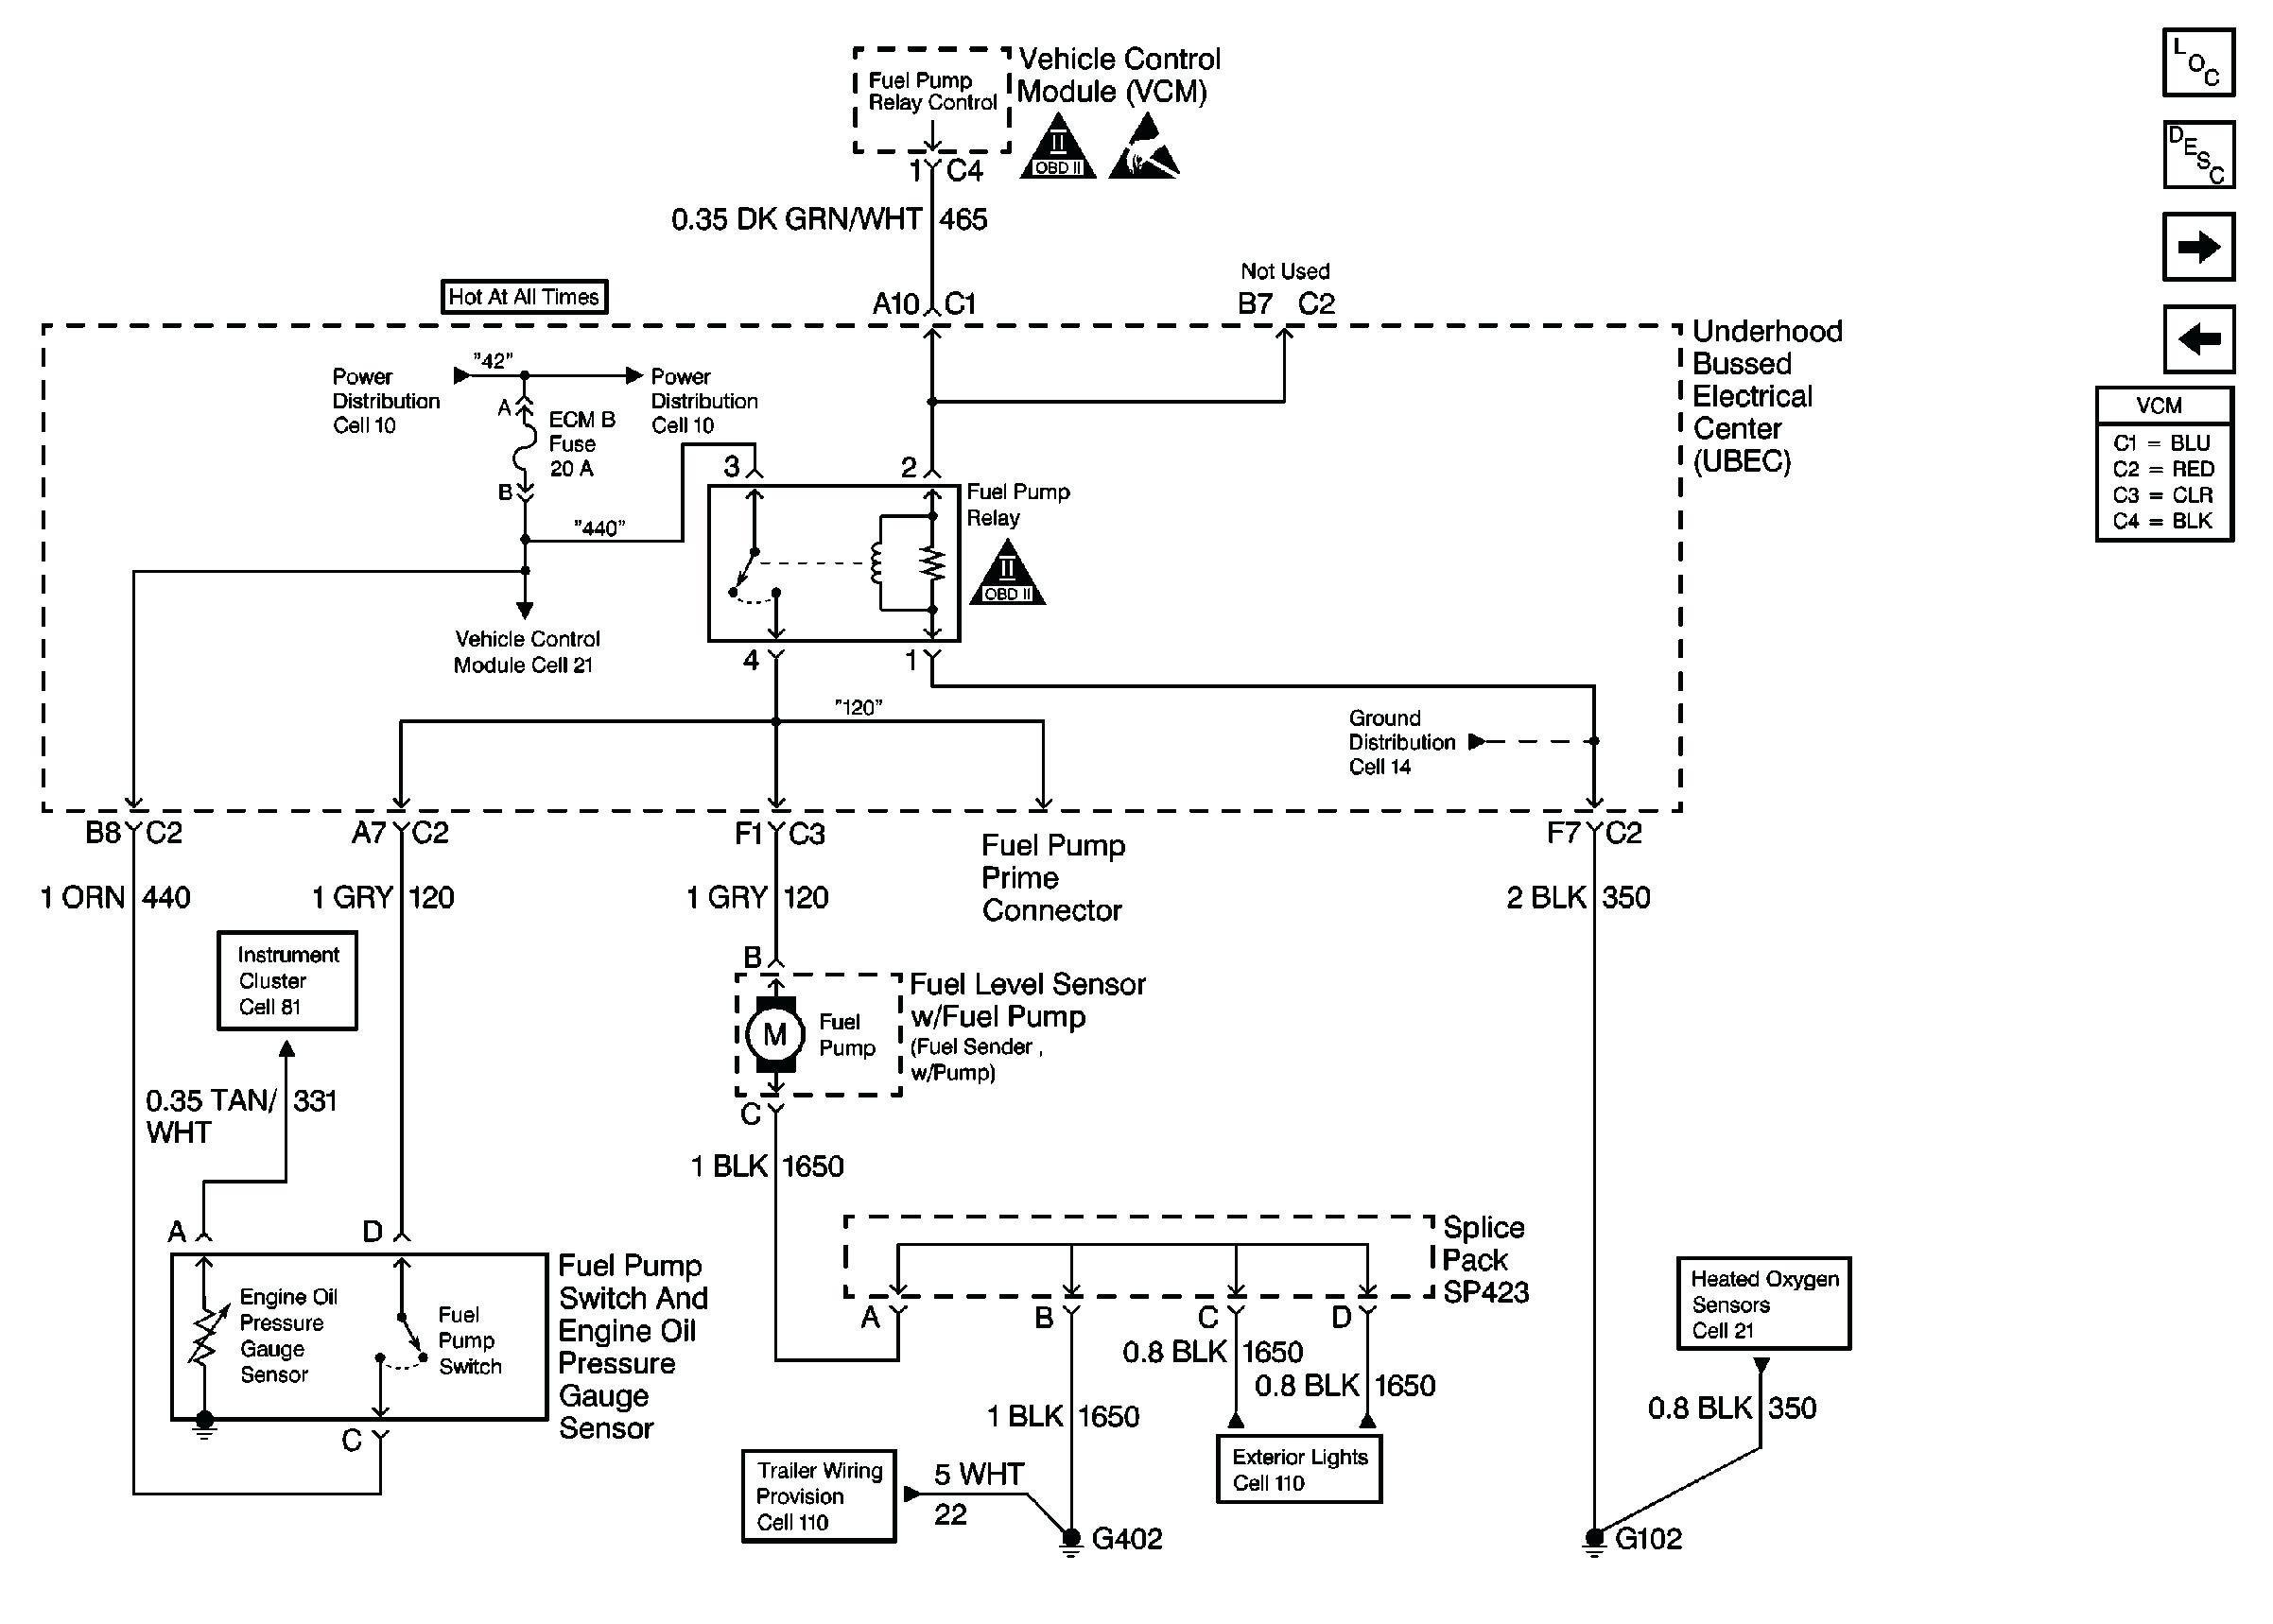 Diagram 2004 Silverado Fuel Pump Wiring Diagram Full Version Hd Quality Wiring Diagram Hrdiagramsi Anacr47 Fr